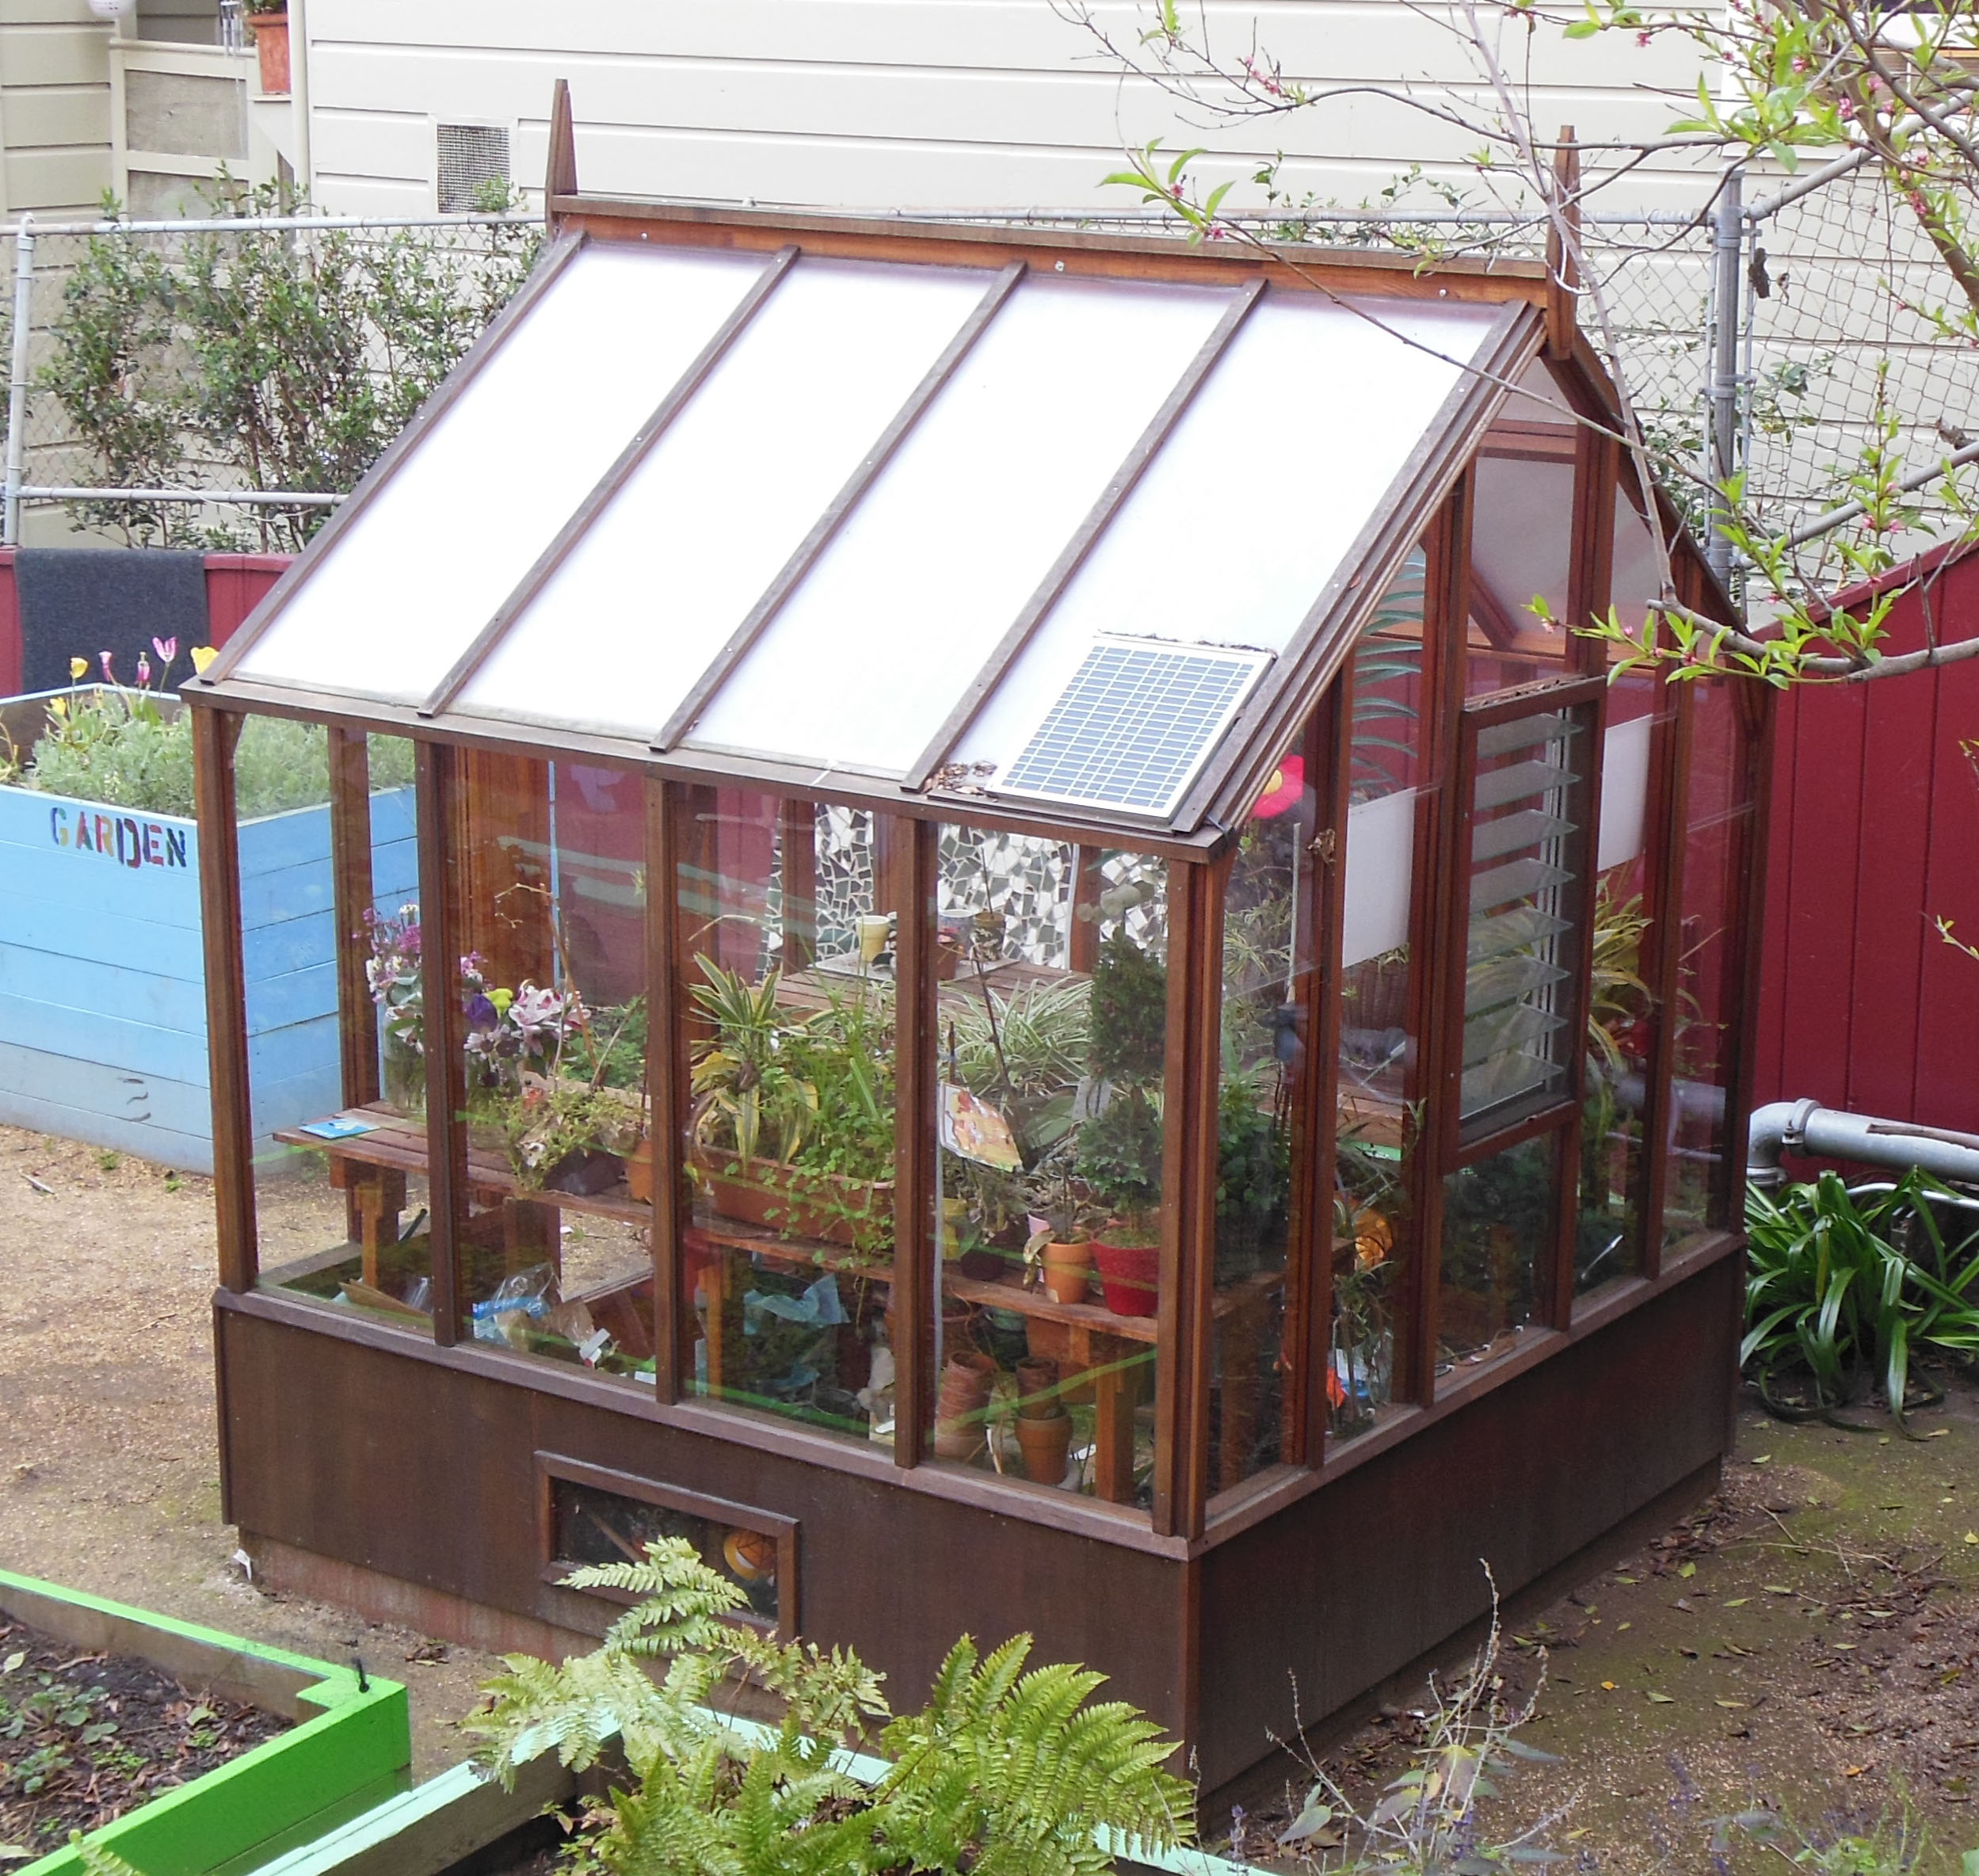 Our greenhouse glazing is lapped glass